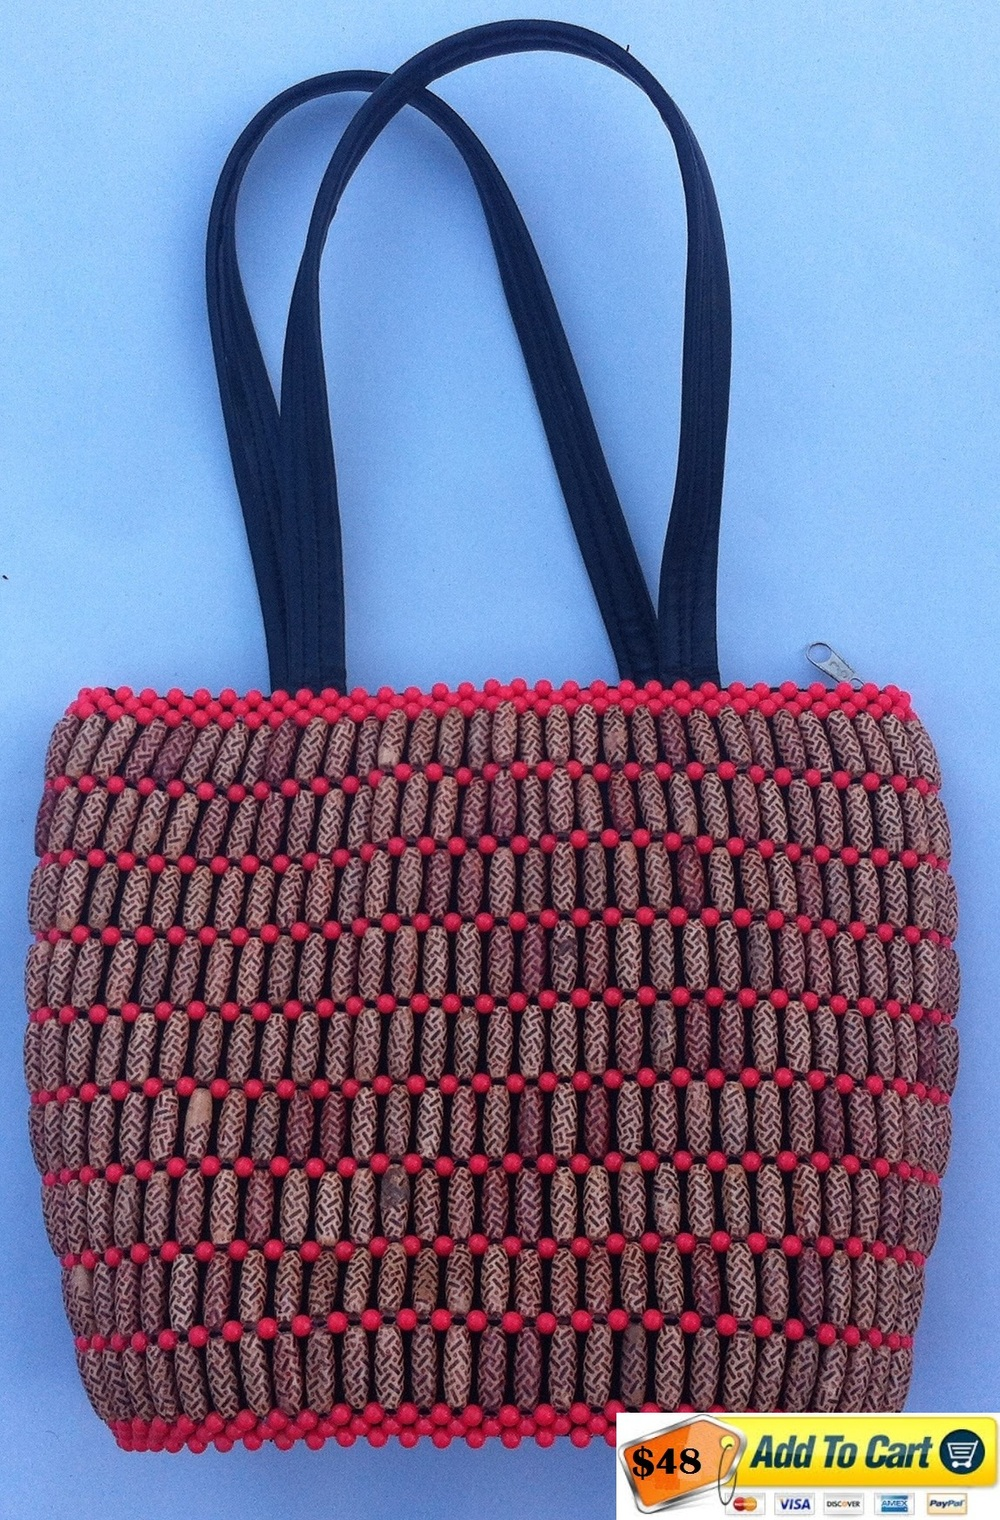 AWB 108. African Women's Bag